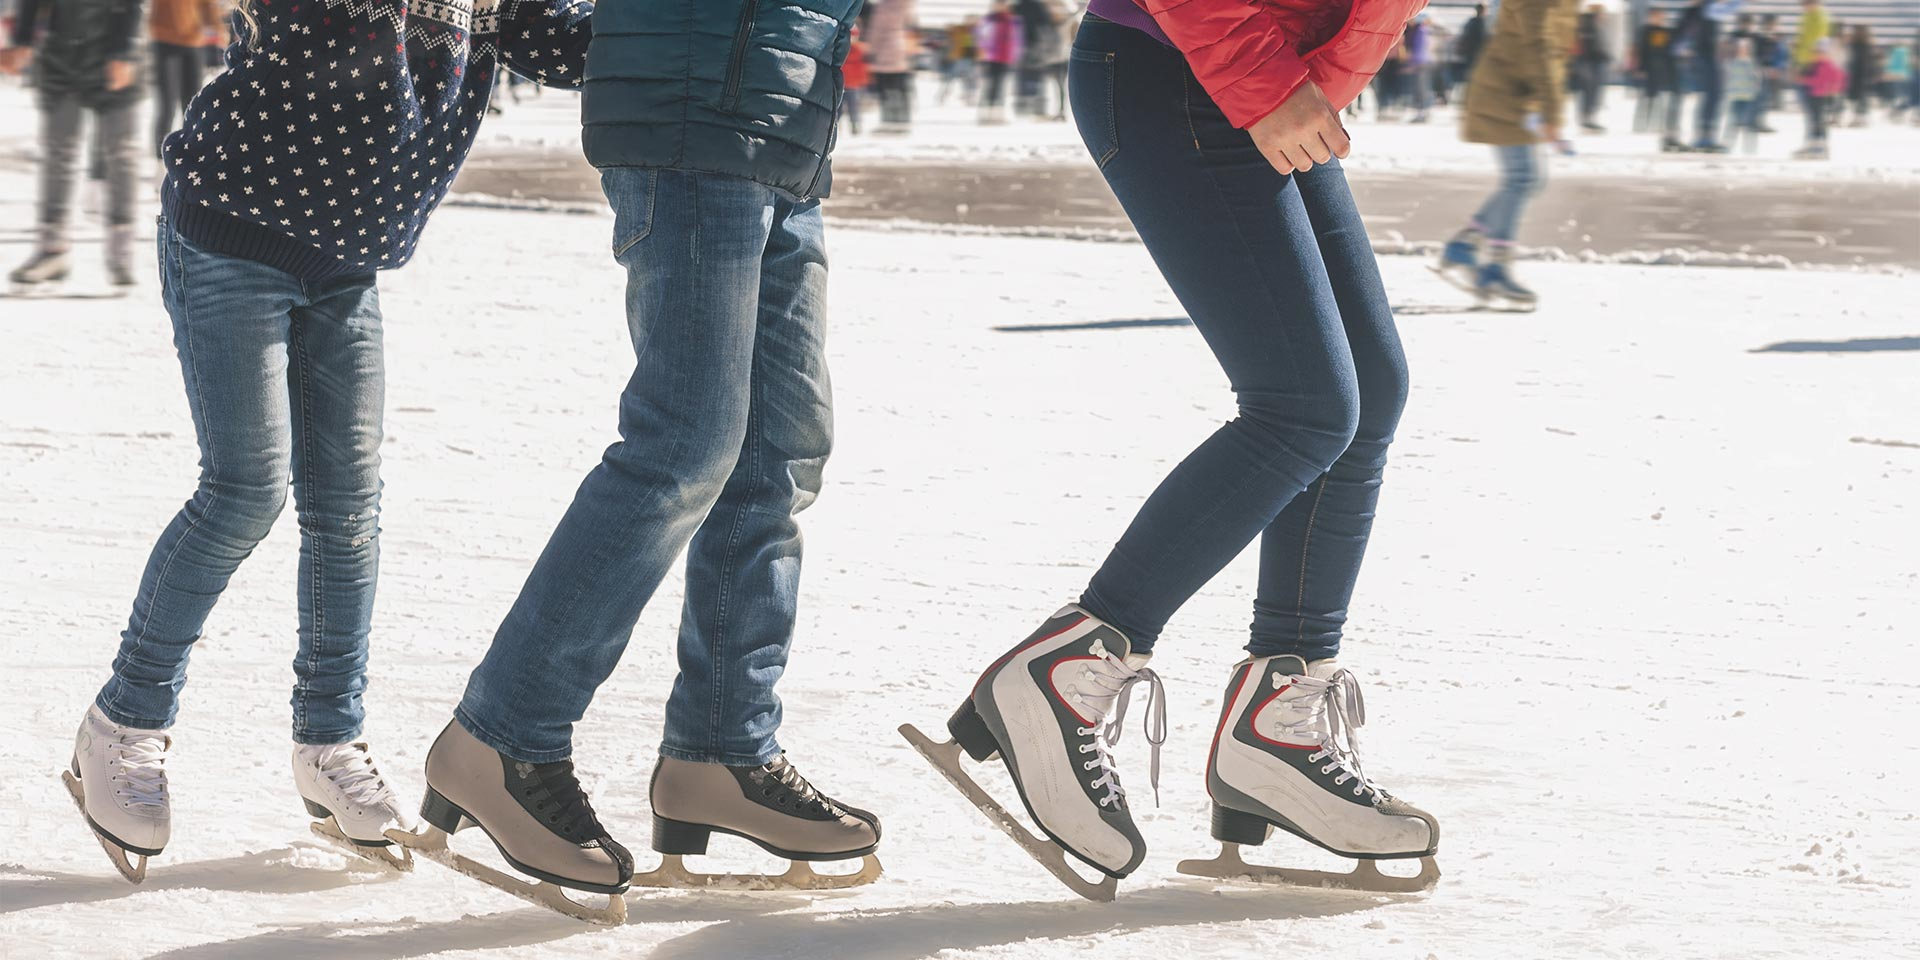 three people ice skating